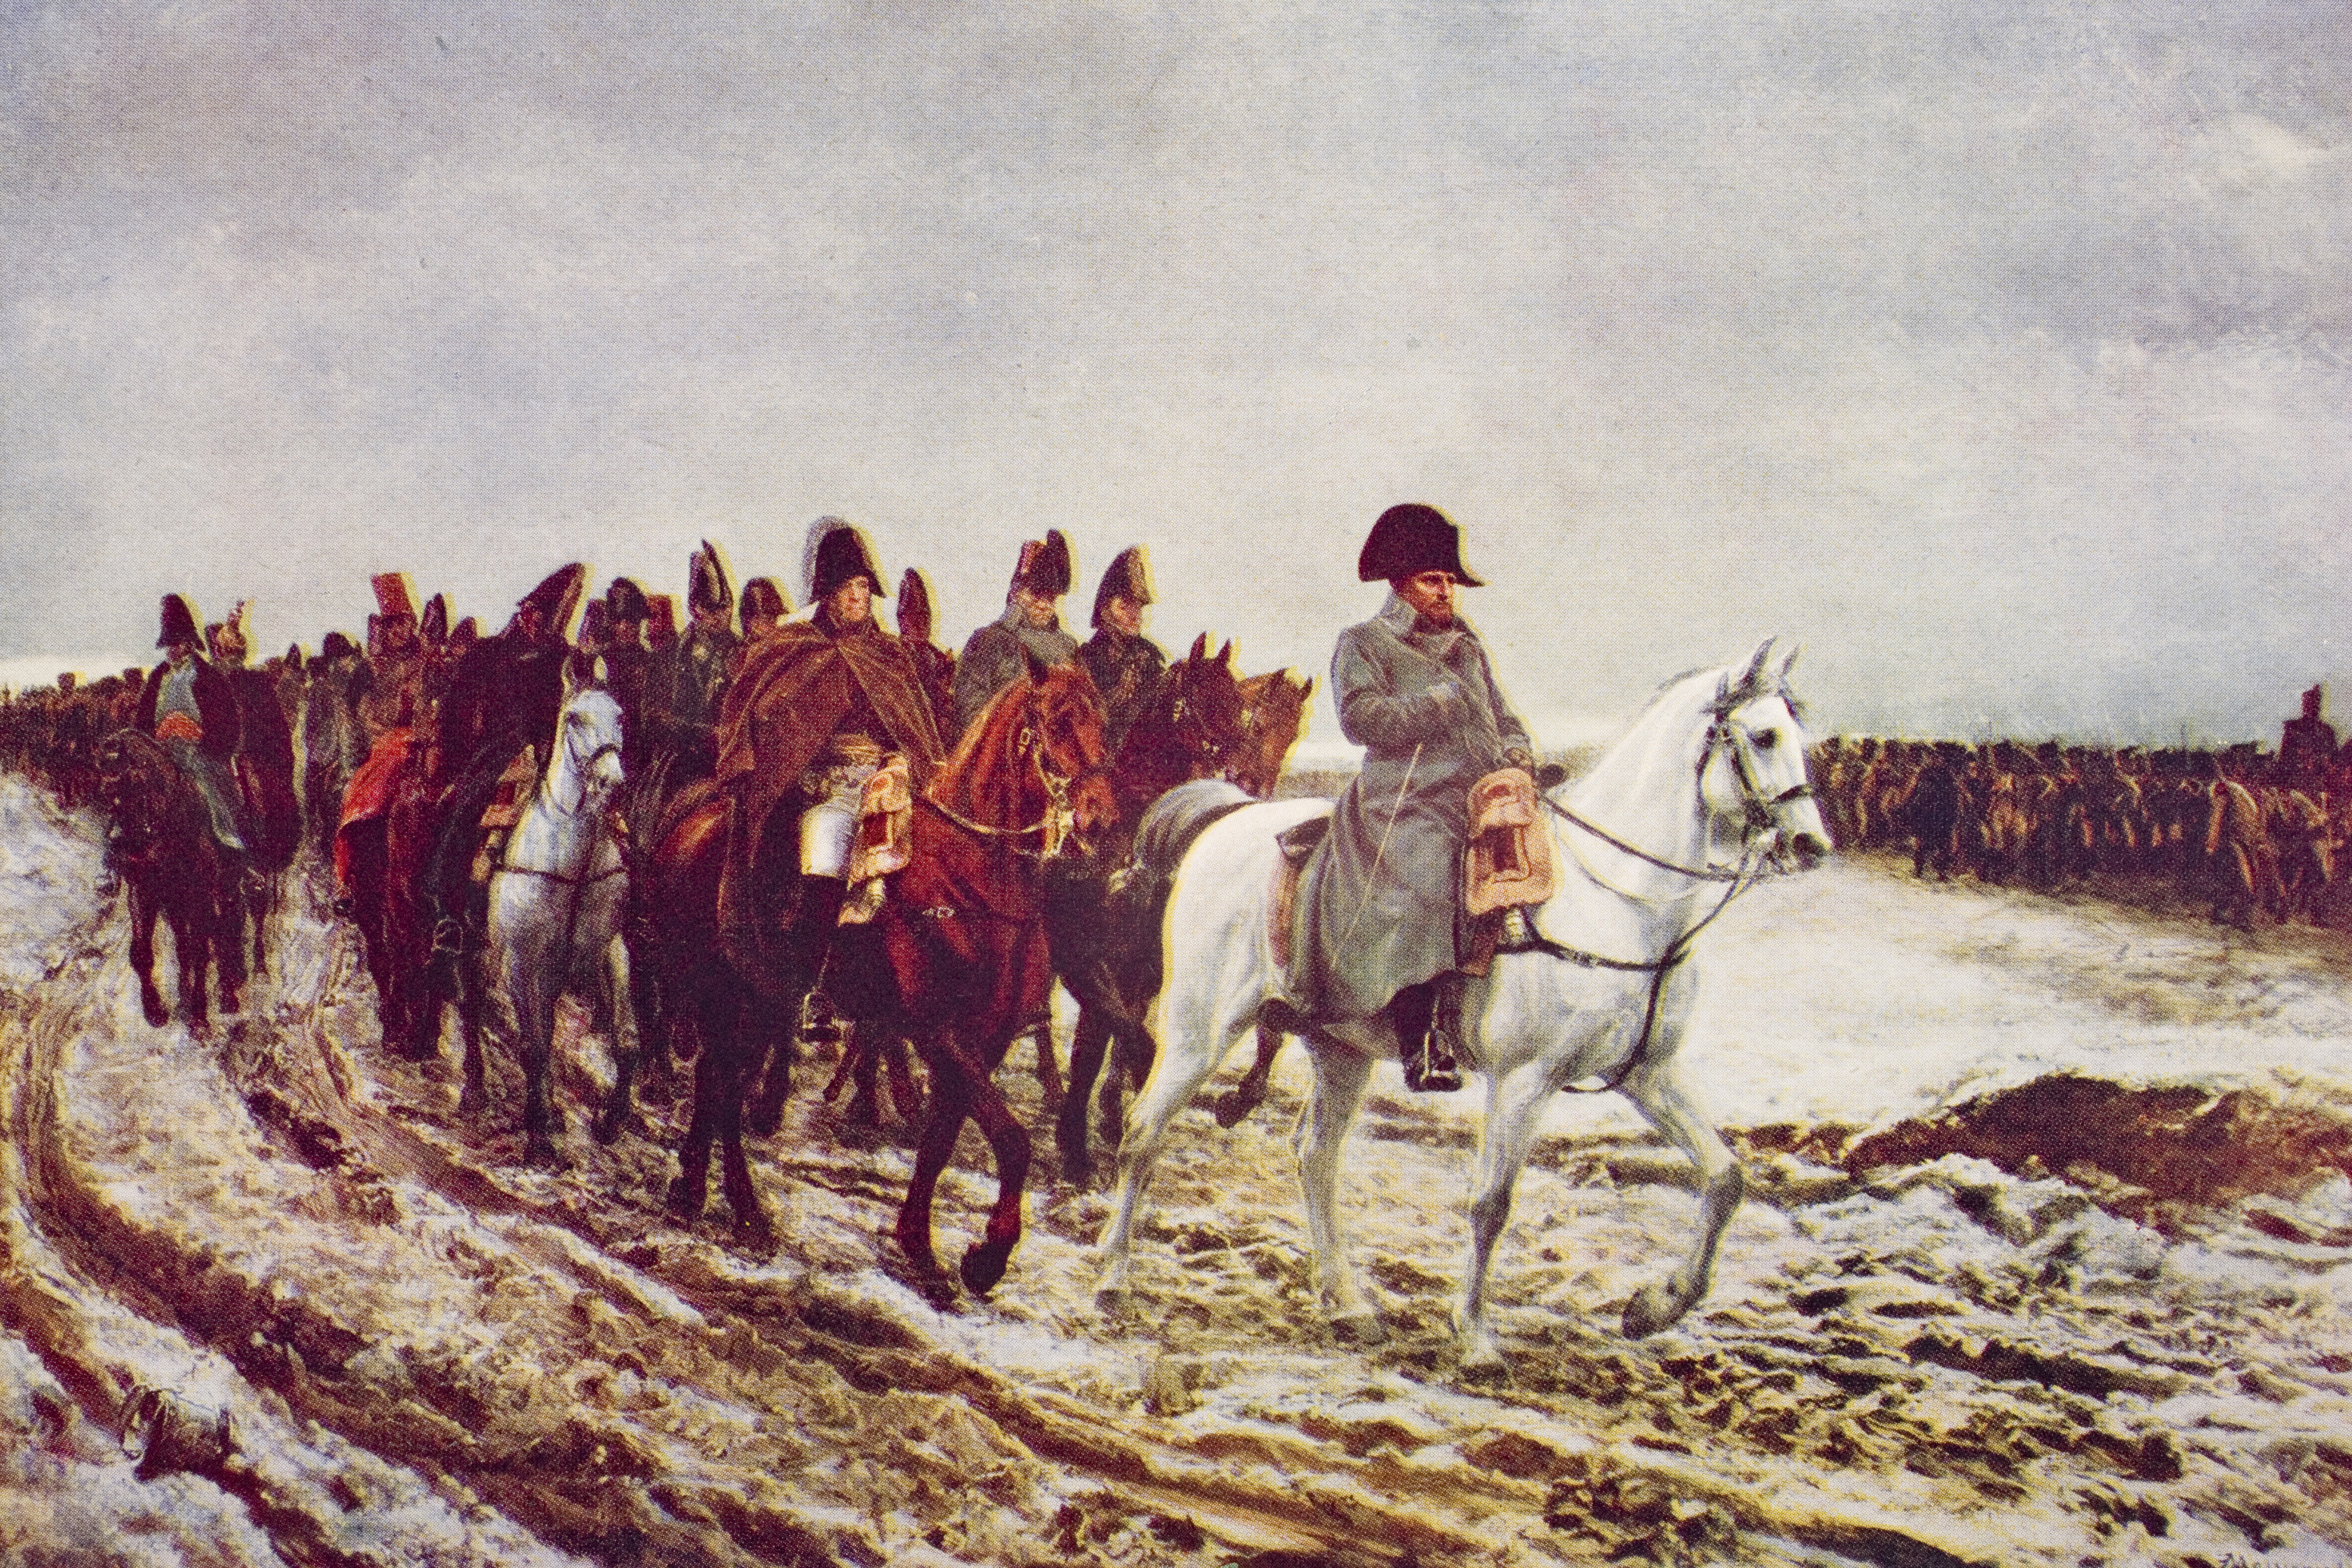 UNSPECIFIED - CIRCA 1800: Napoleon's retreat from Moscow, 1814. From the painting by Meissonier from the book The Outline of History by H.G.Wells Volume 2, published 1920. (Photo by Universal History Archive/Getty Images)